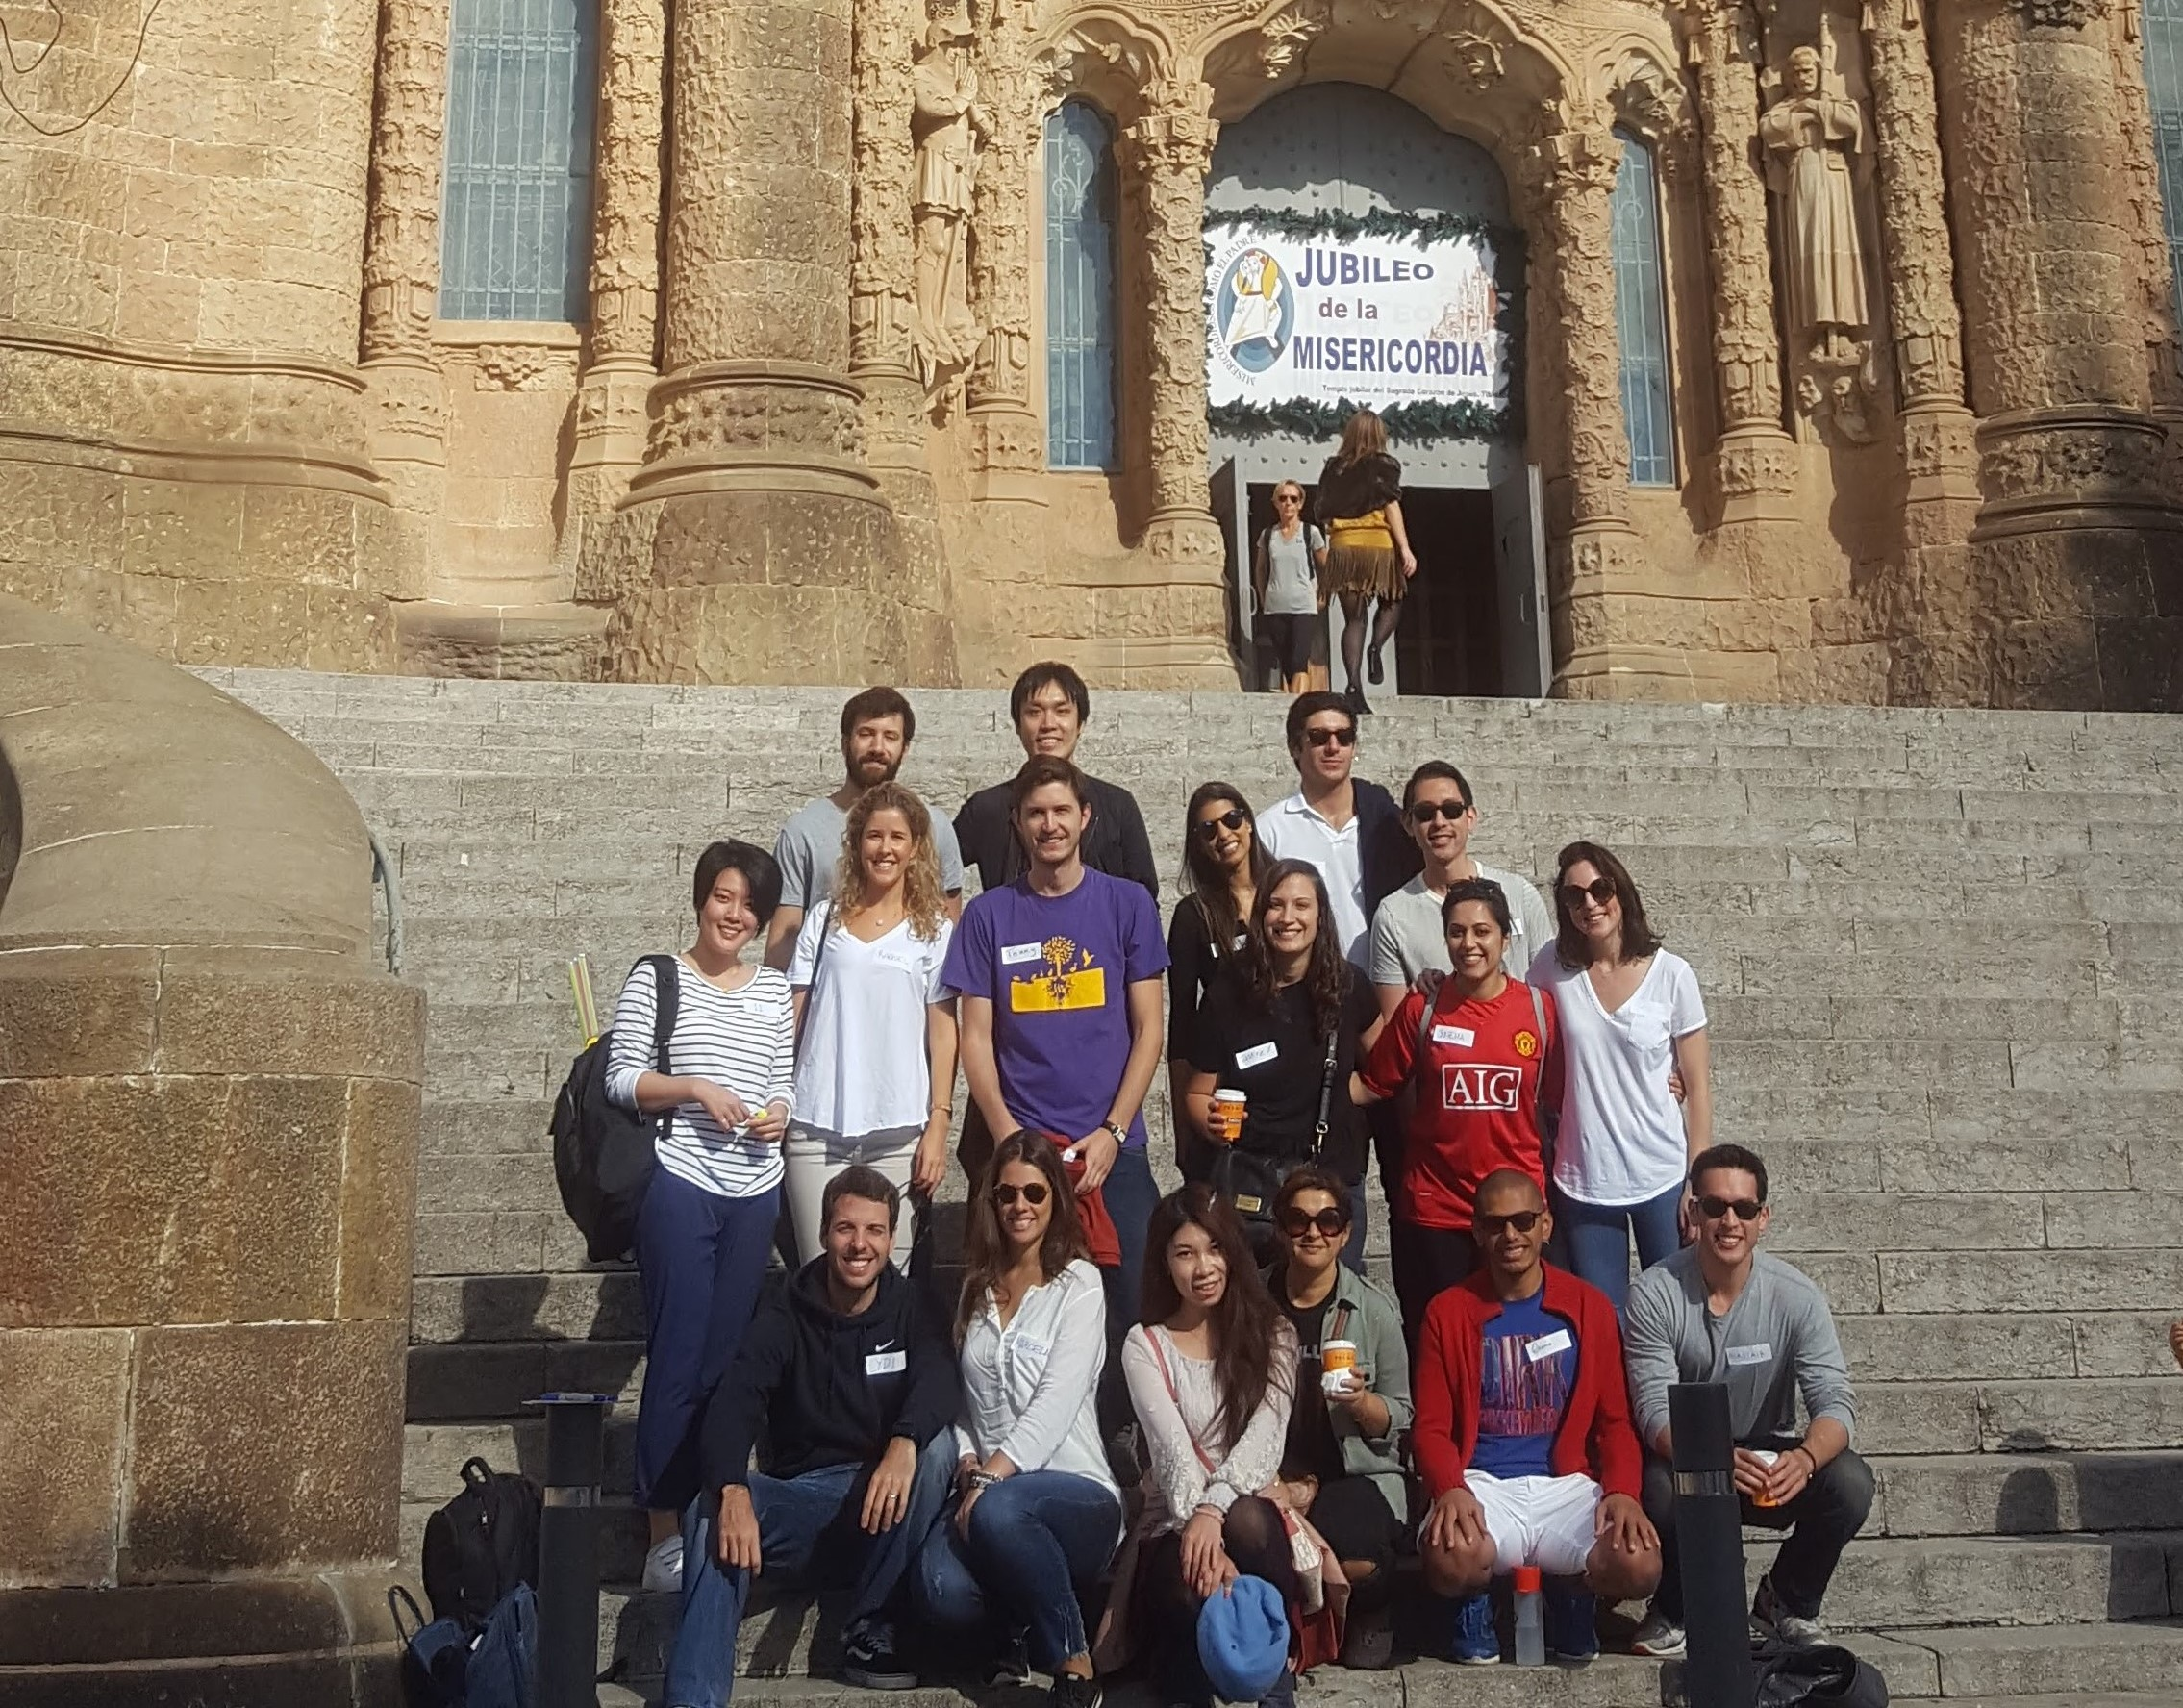 Members of the Social Action Club at Tibidabo